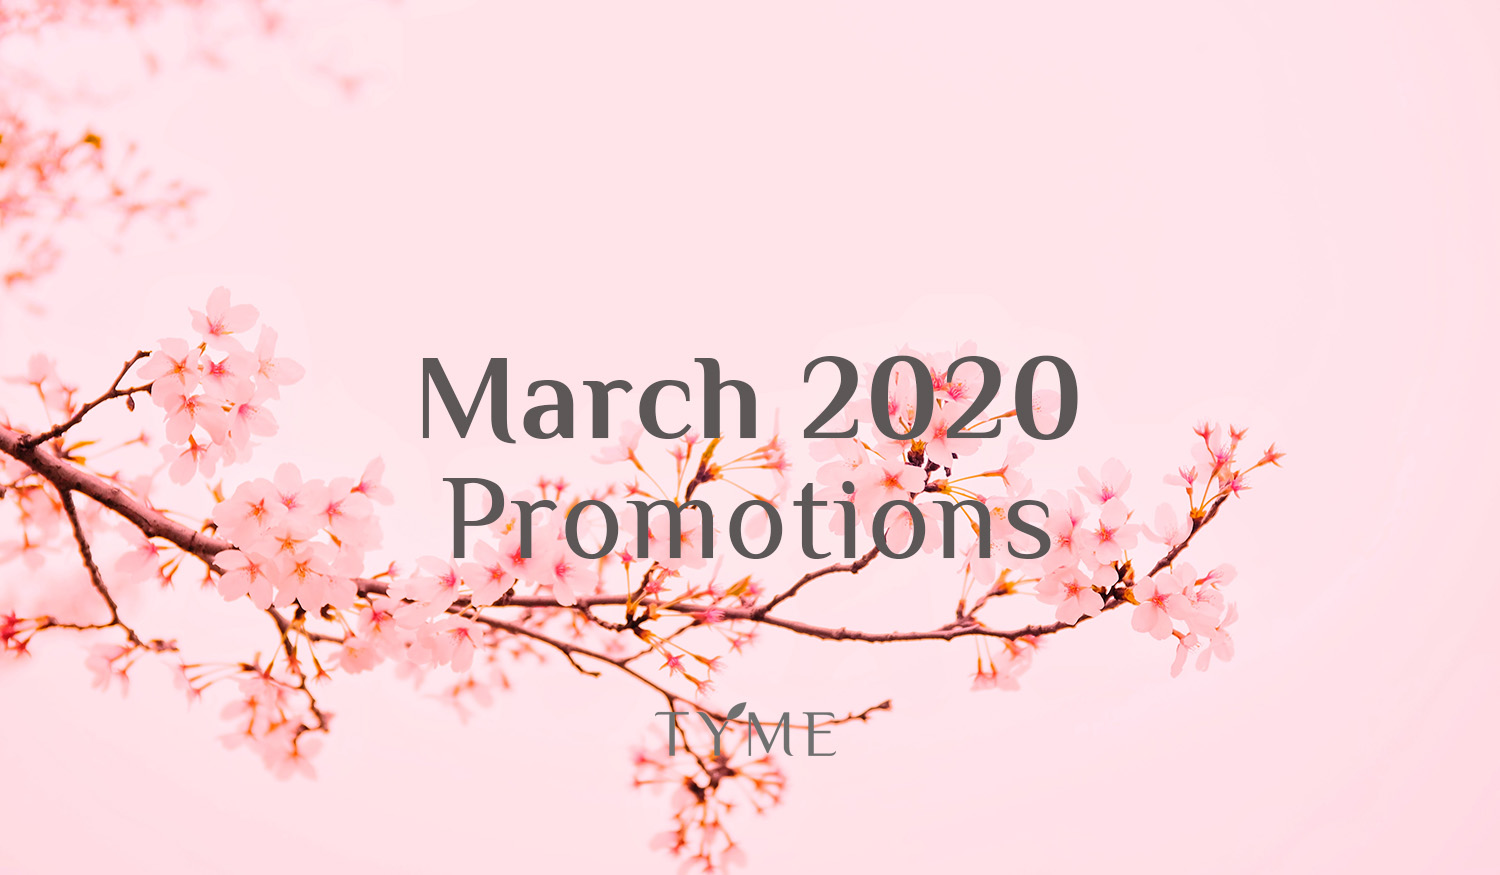 TYME Promotion of March 2020